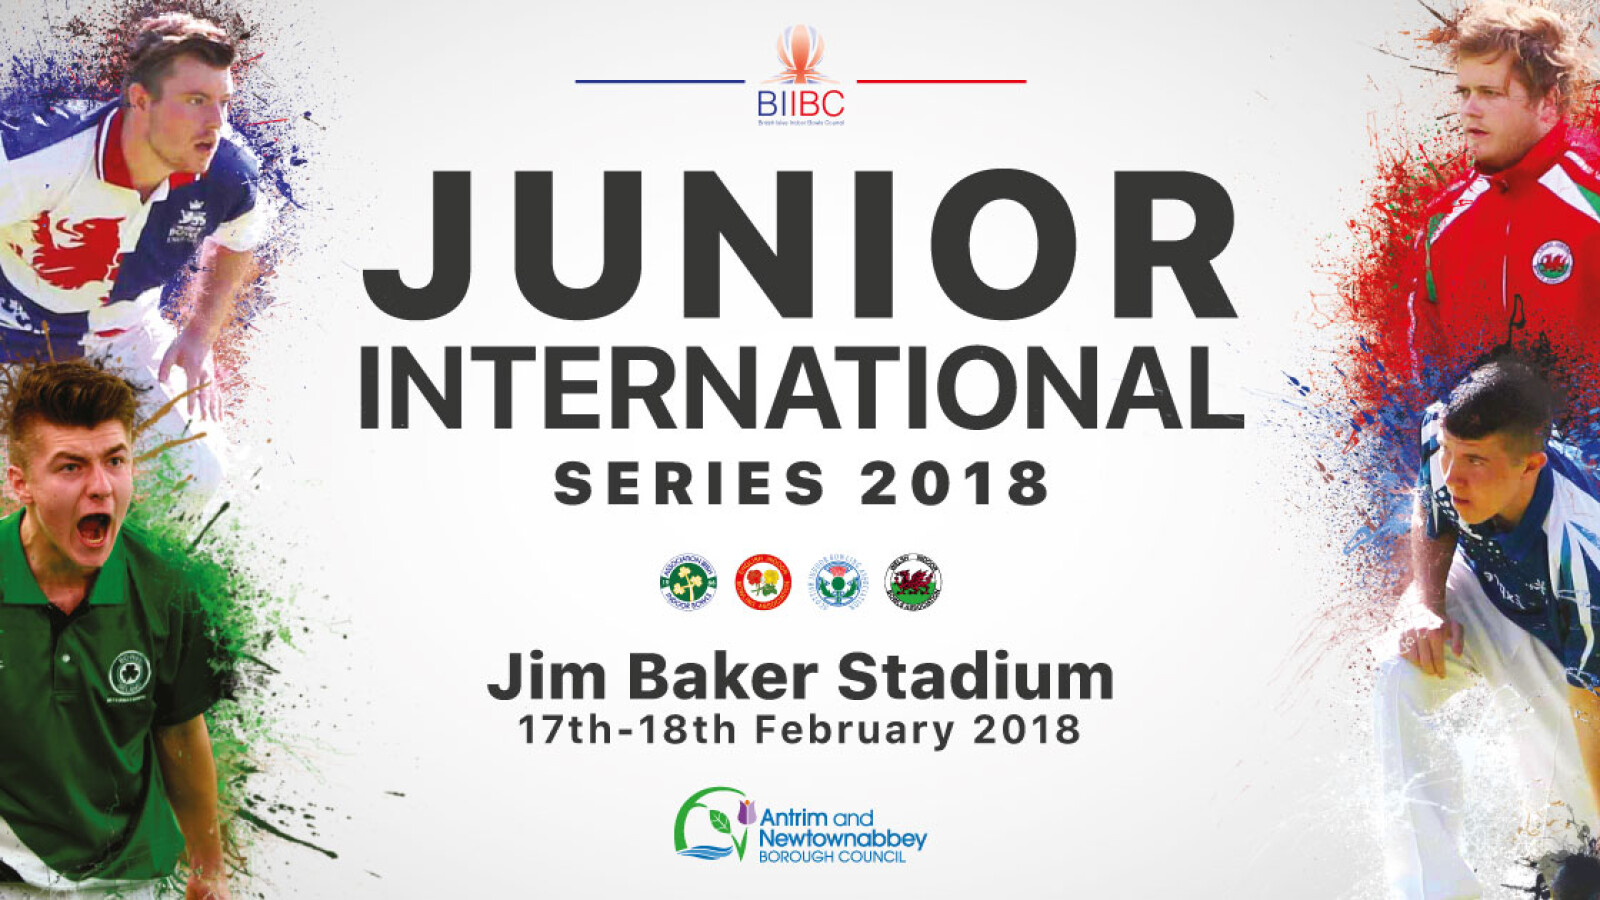 BIIBC Junior International Series 2018